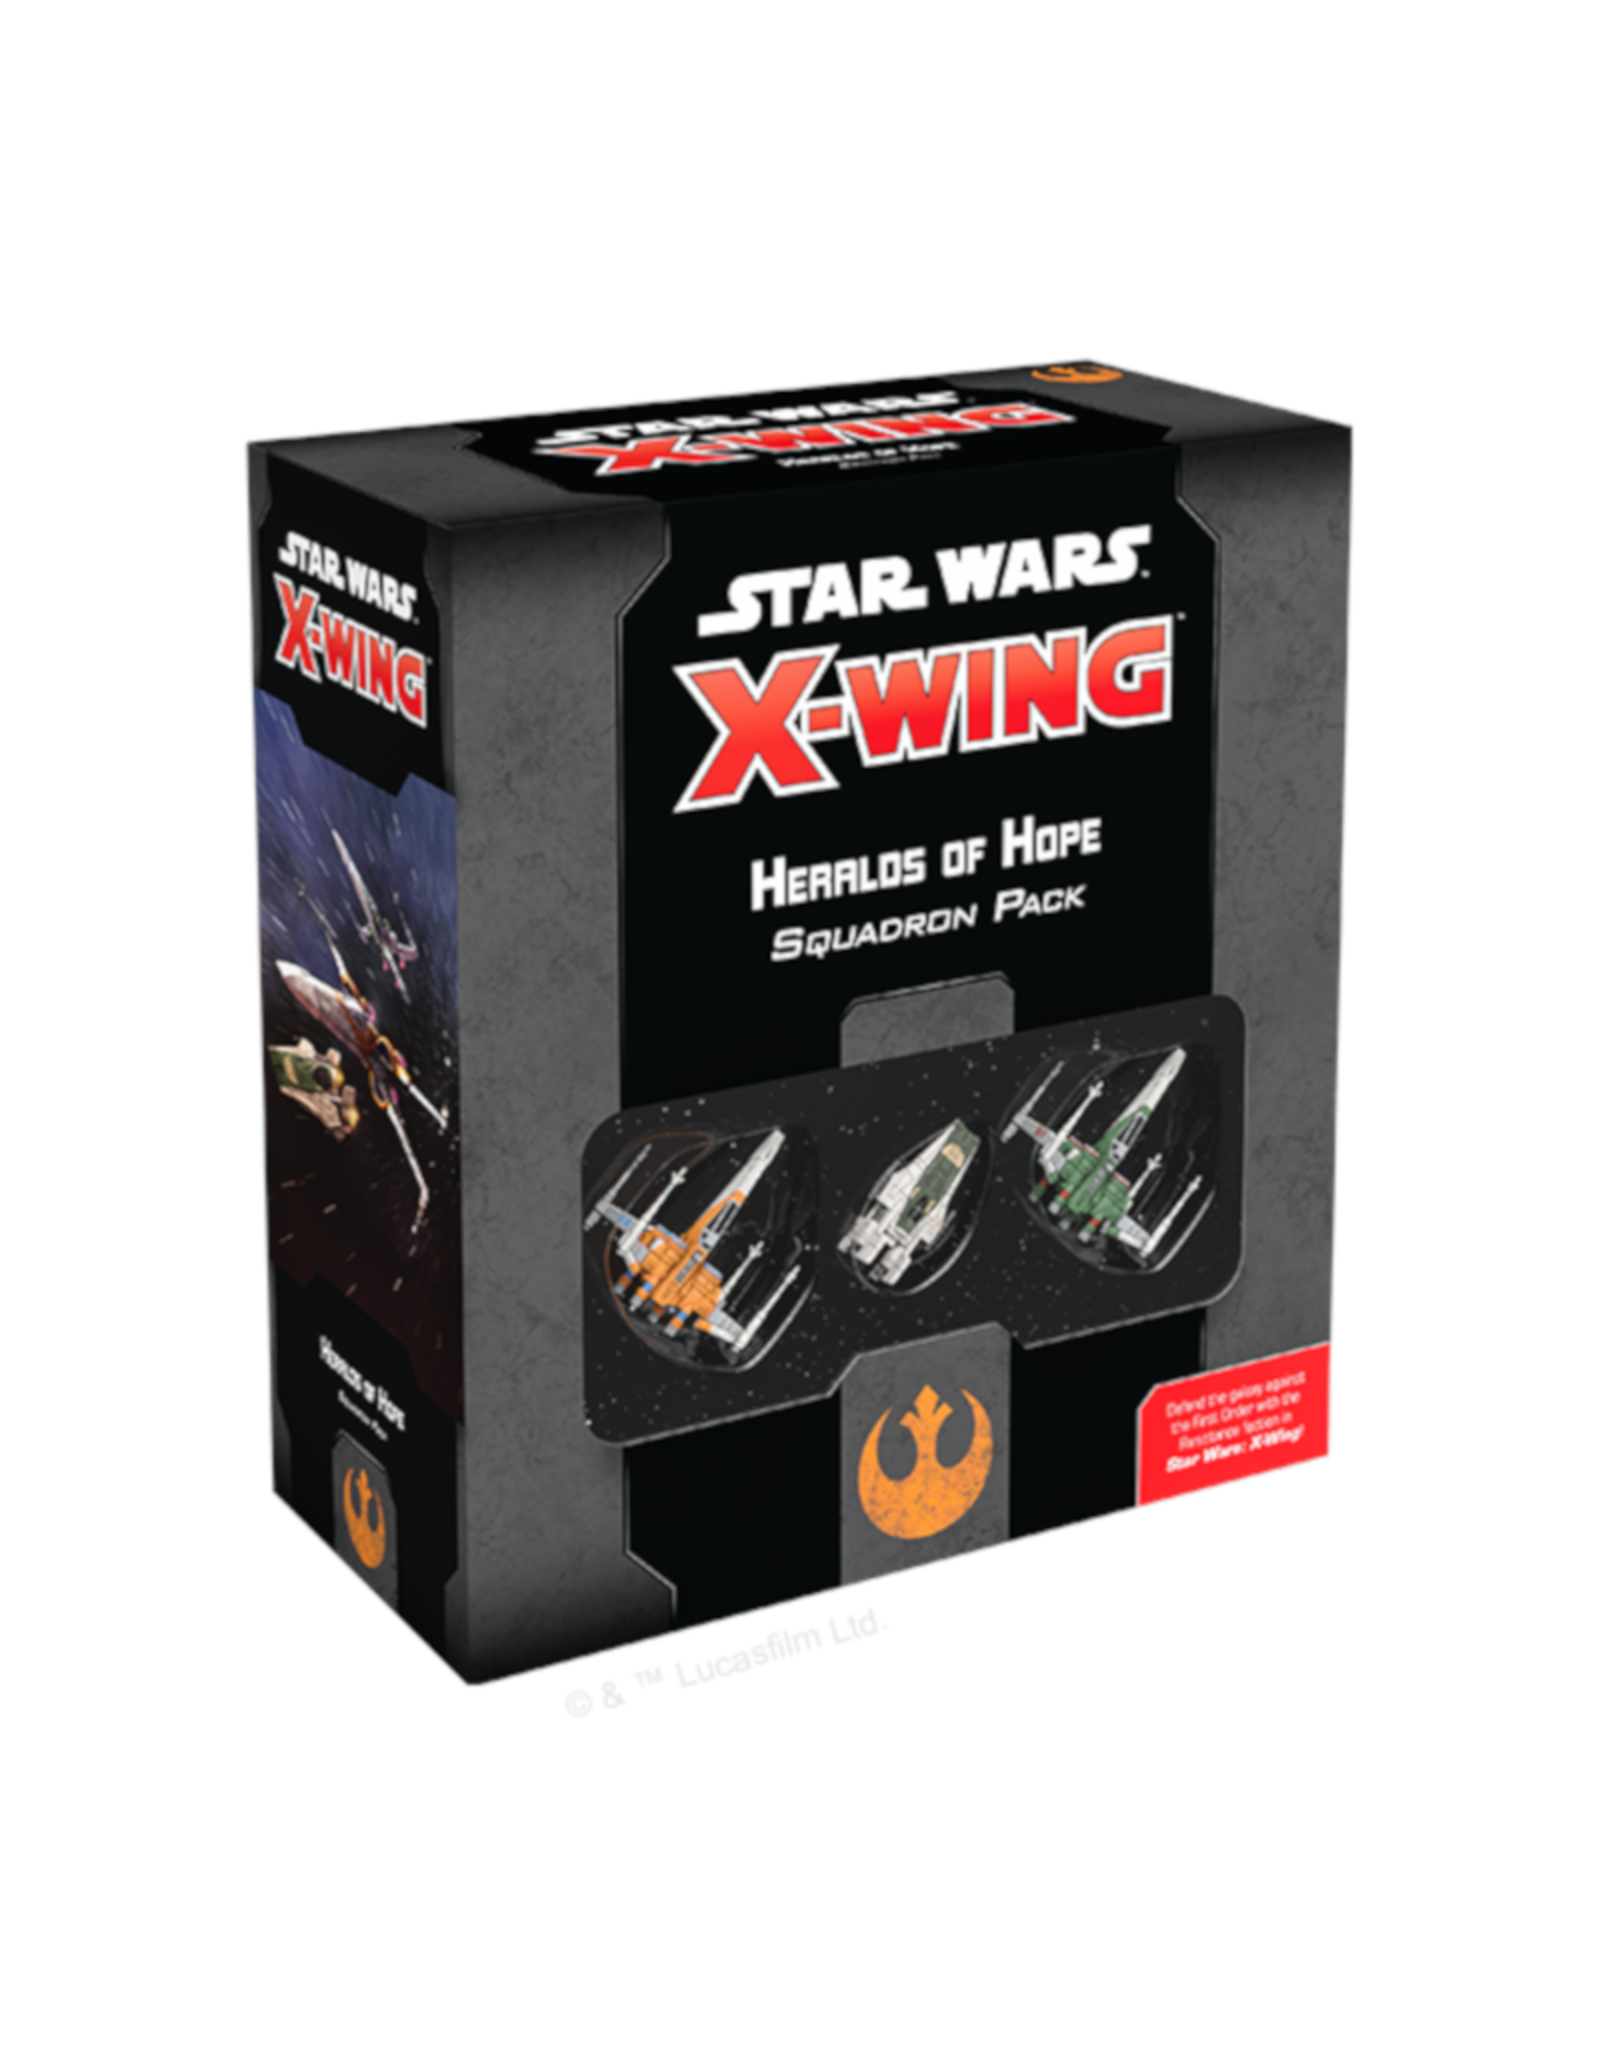 Star Wars X-Wing Heralds of Hope